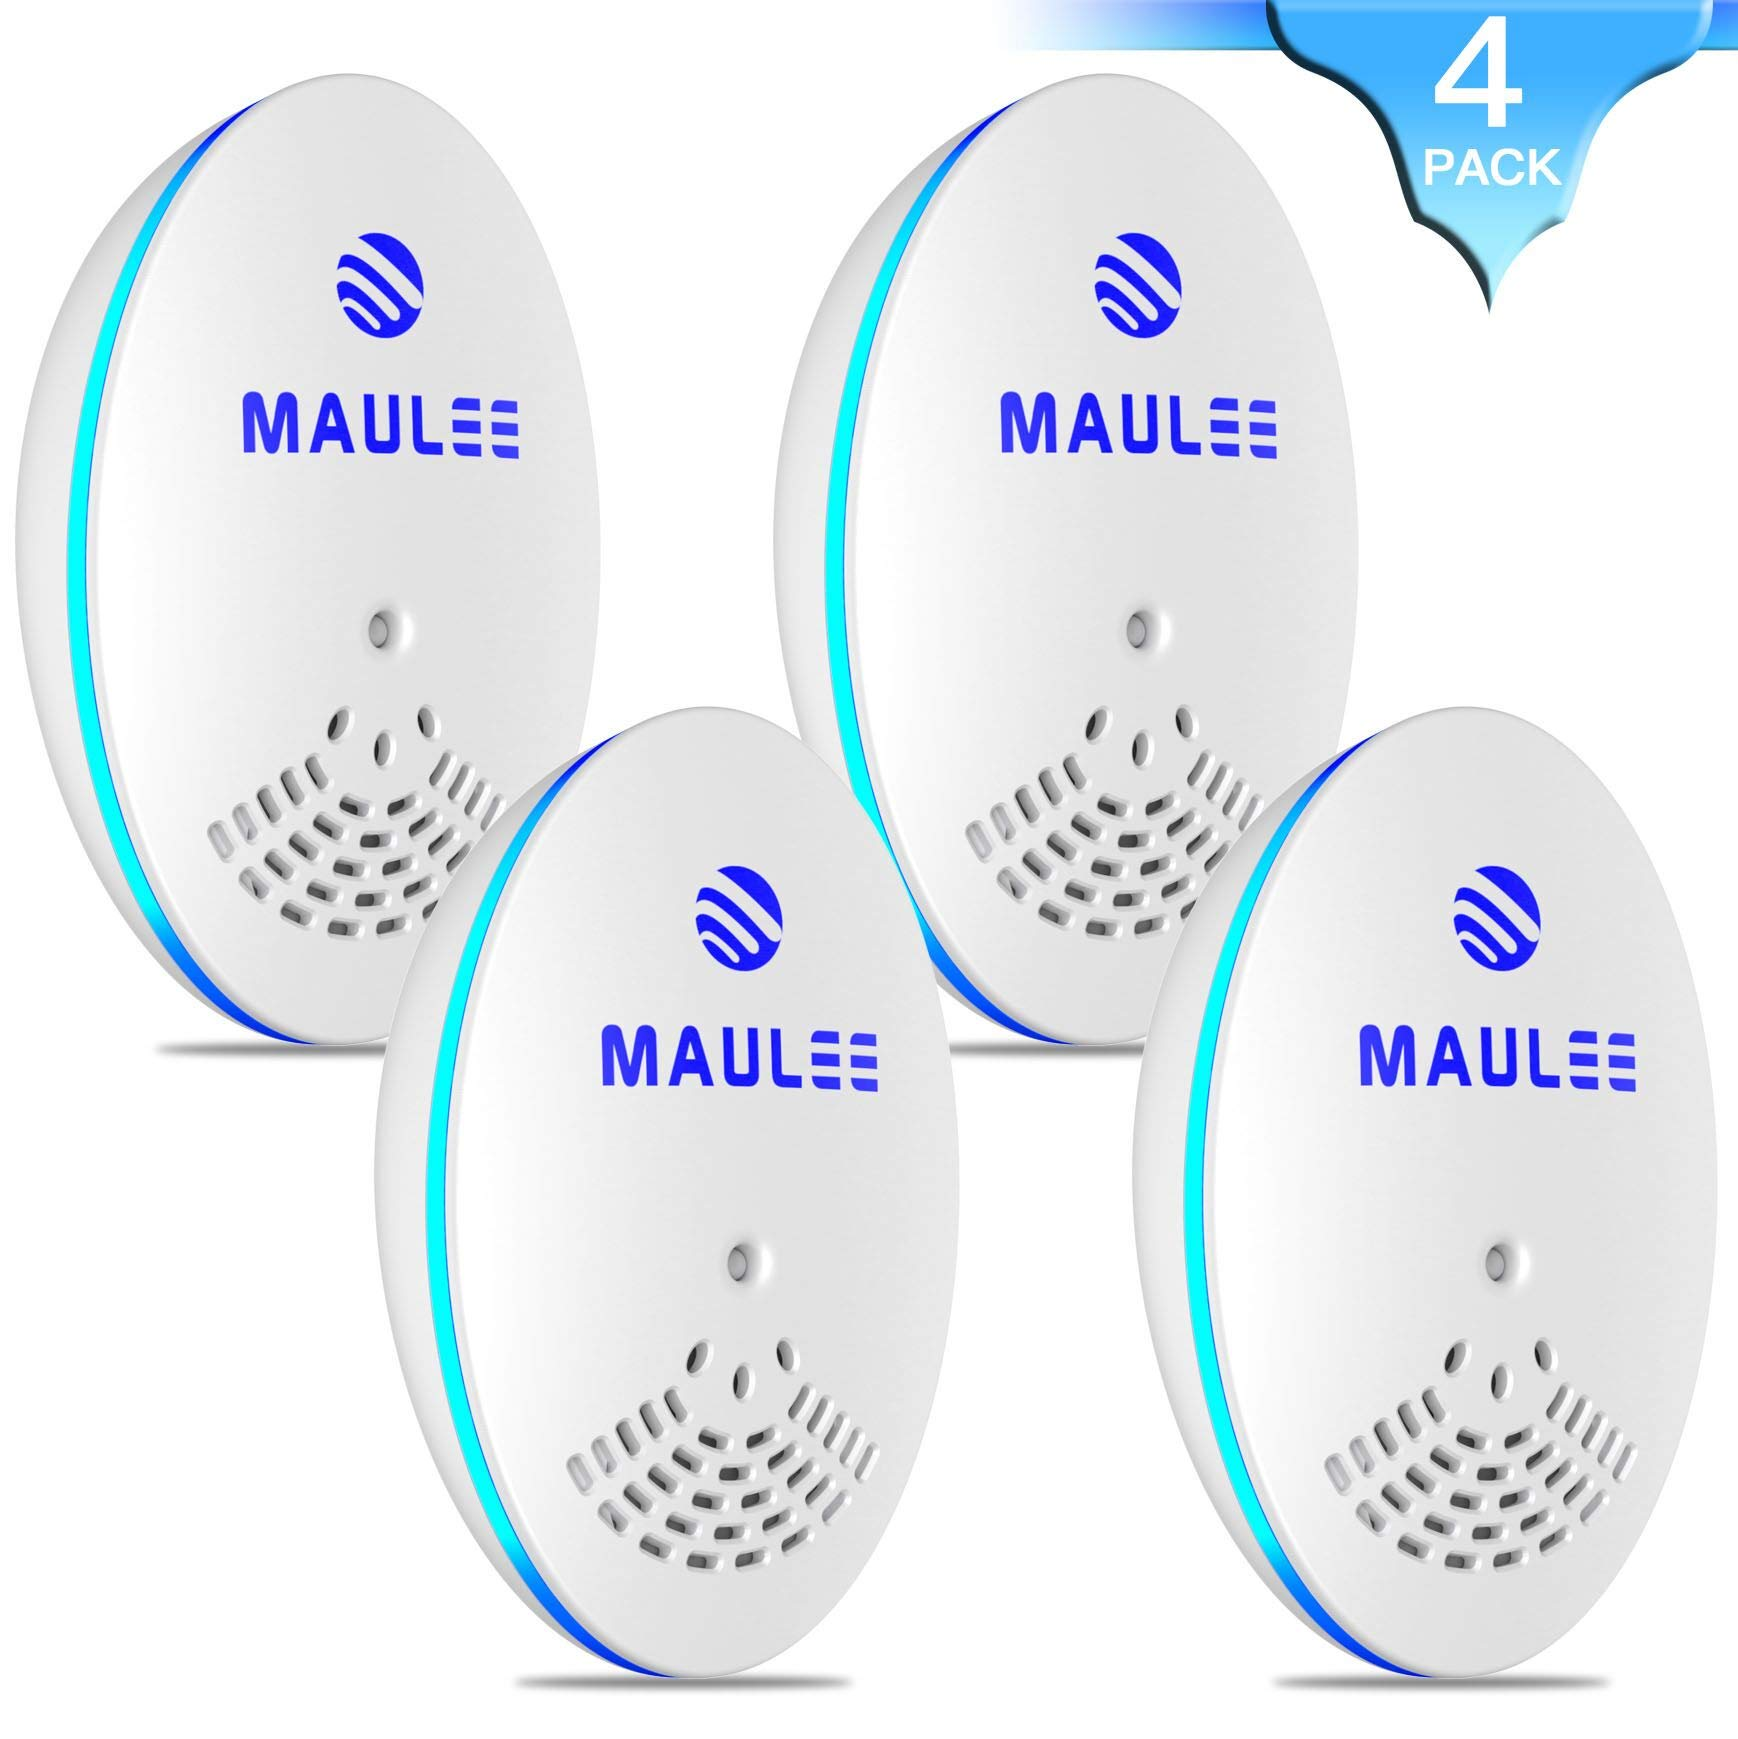 Ultrasonic Pest Repeller, Plug-in Repellent, 4-Pack,Effective Upgraded Electronic & Ultrasound, Indoor use, Anti Mice, Insects, Bugs, Ants, Spiders, Roaches, Rodents, Mosquitos, Rats product image